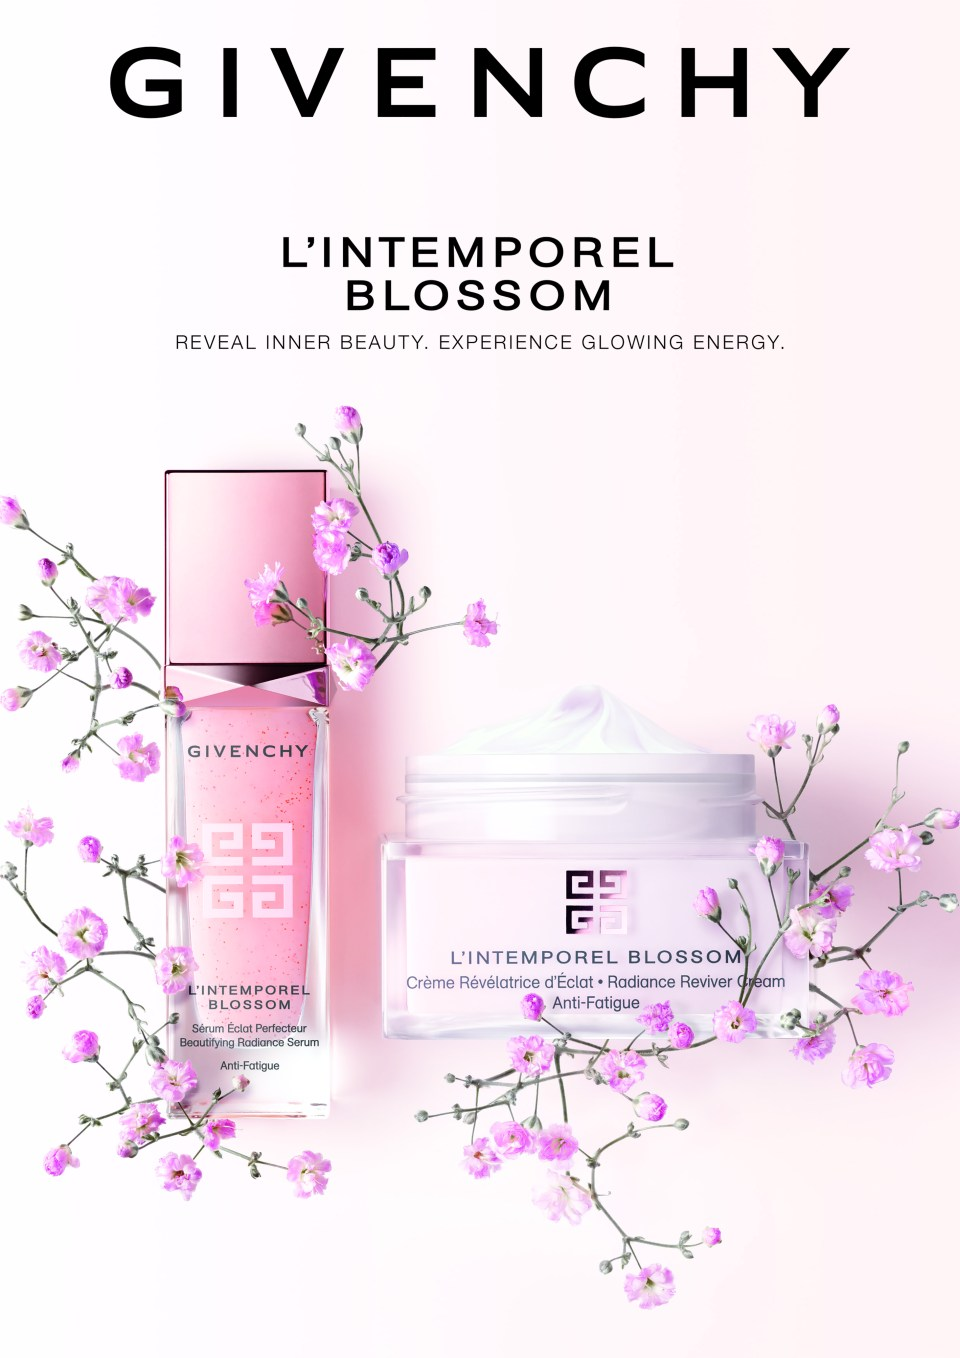 L'Intemporel Blossom на Givenchy